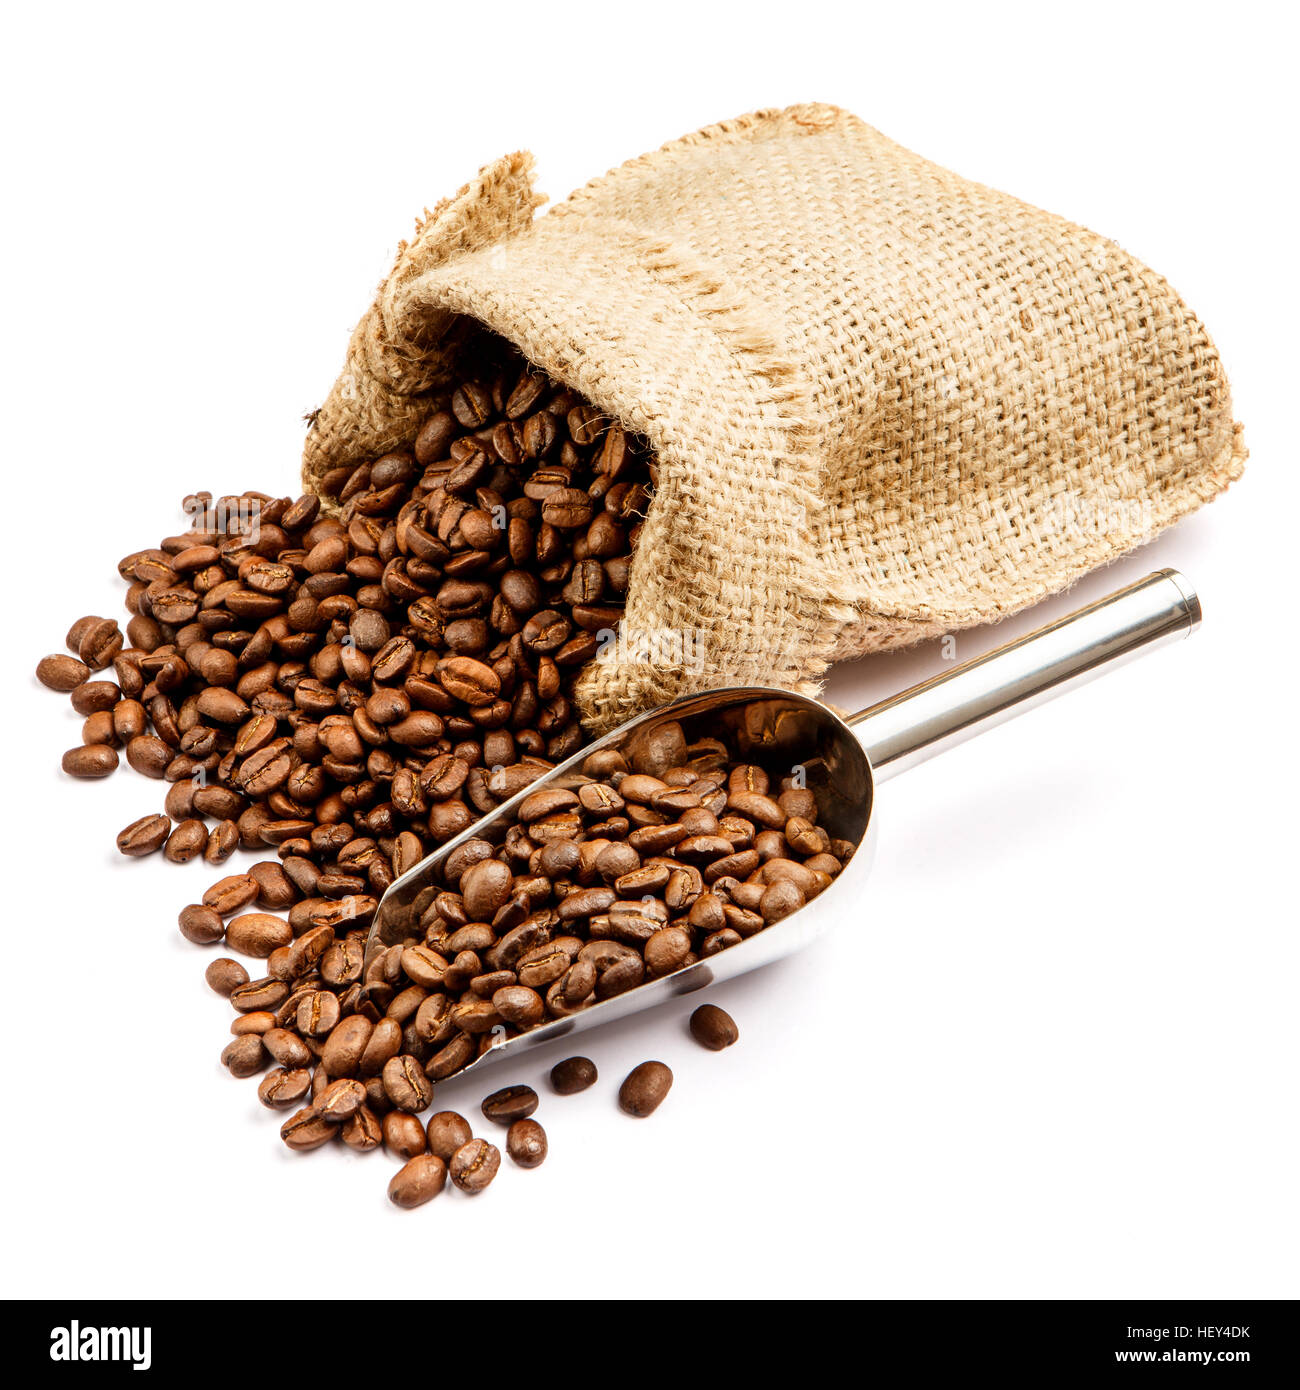 roasted coffee beans in bag isolated on white background - Stock Image